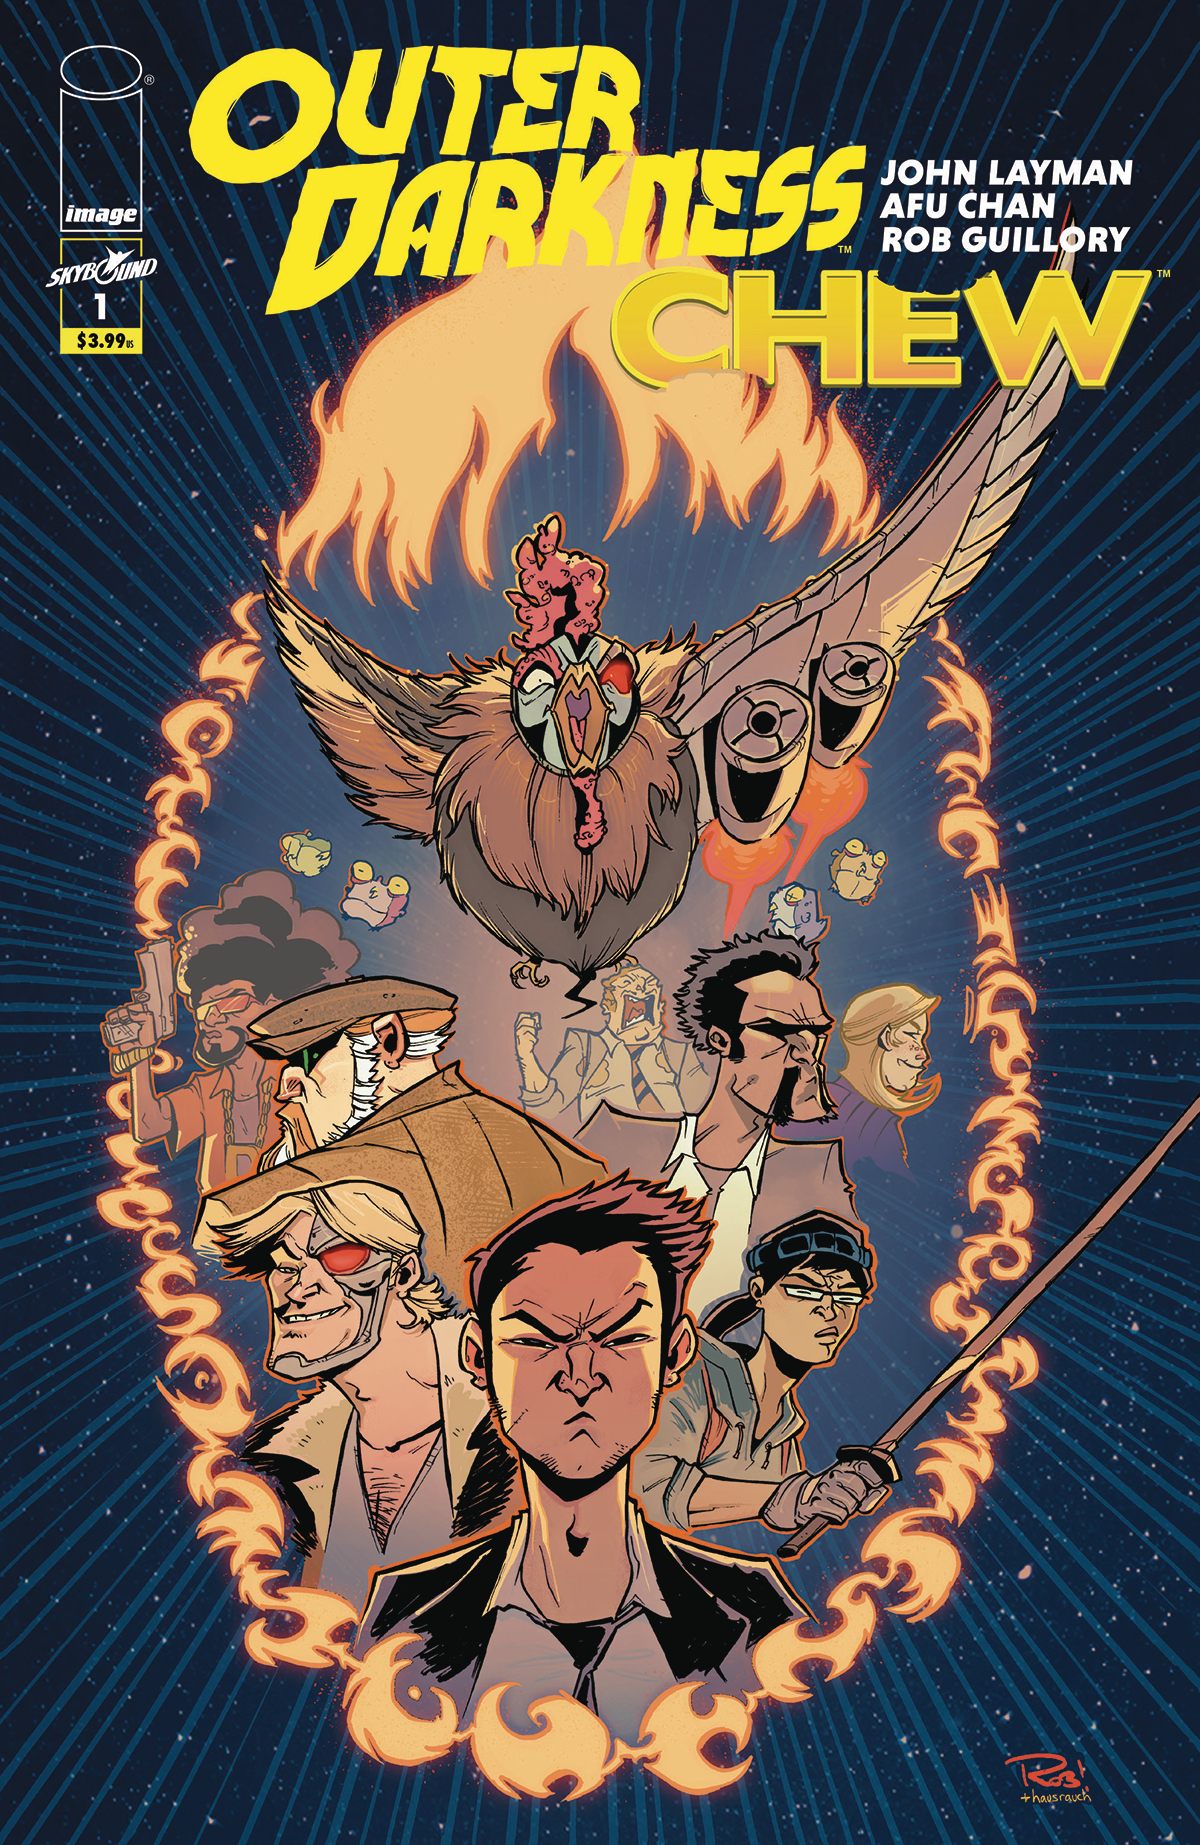 OUTER DARKNESS CHEW #1 (OF 3) CVR B GUILLORY (MR)